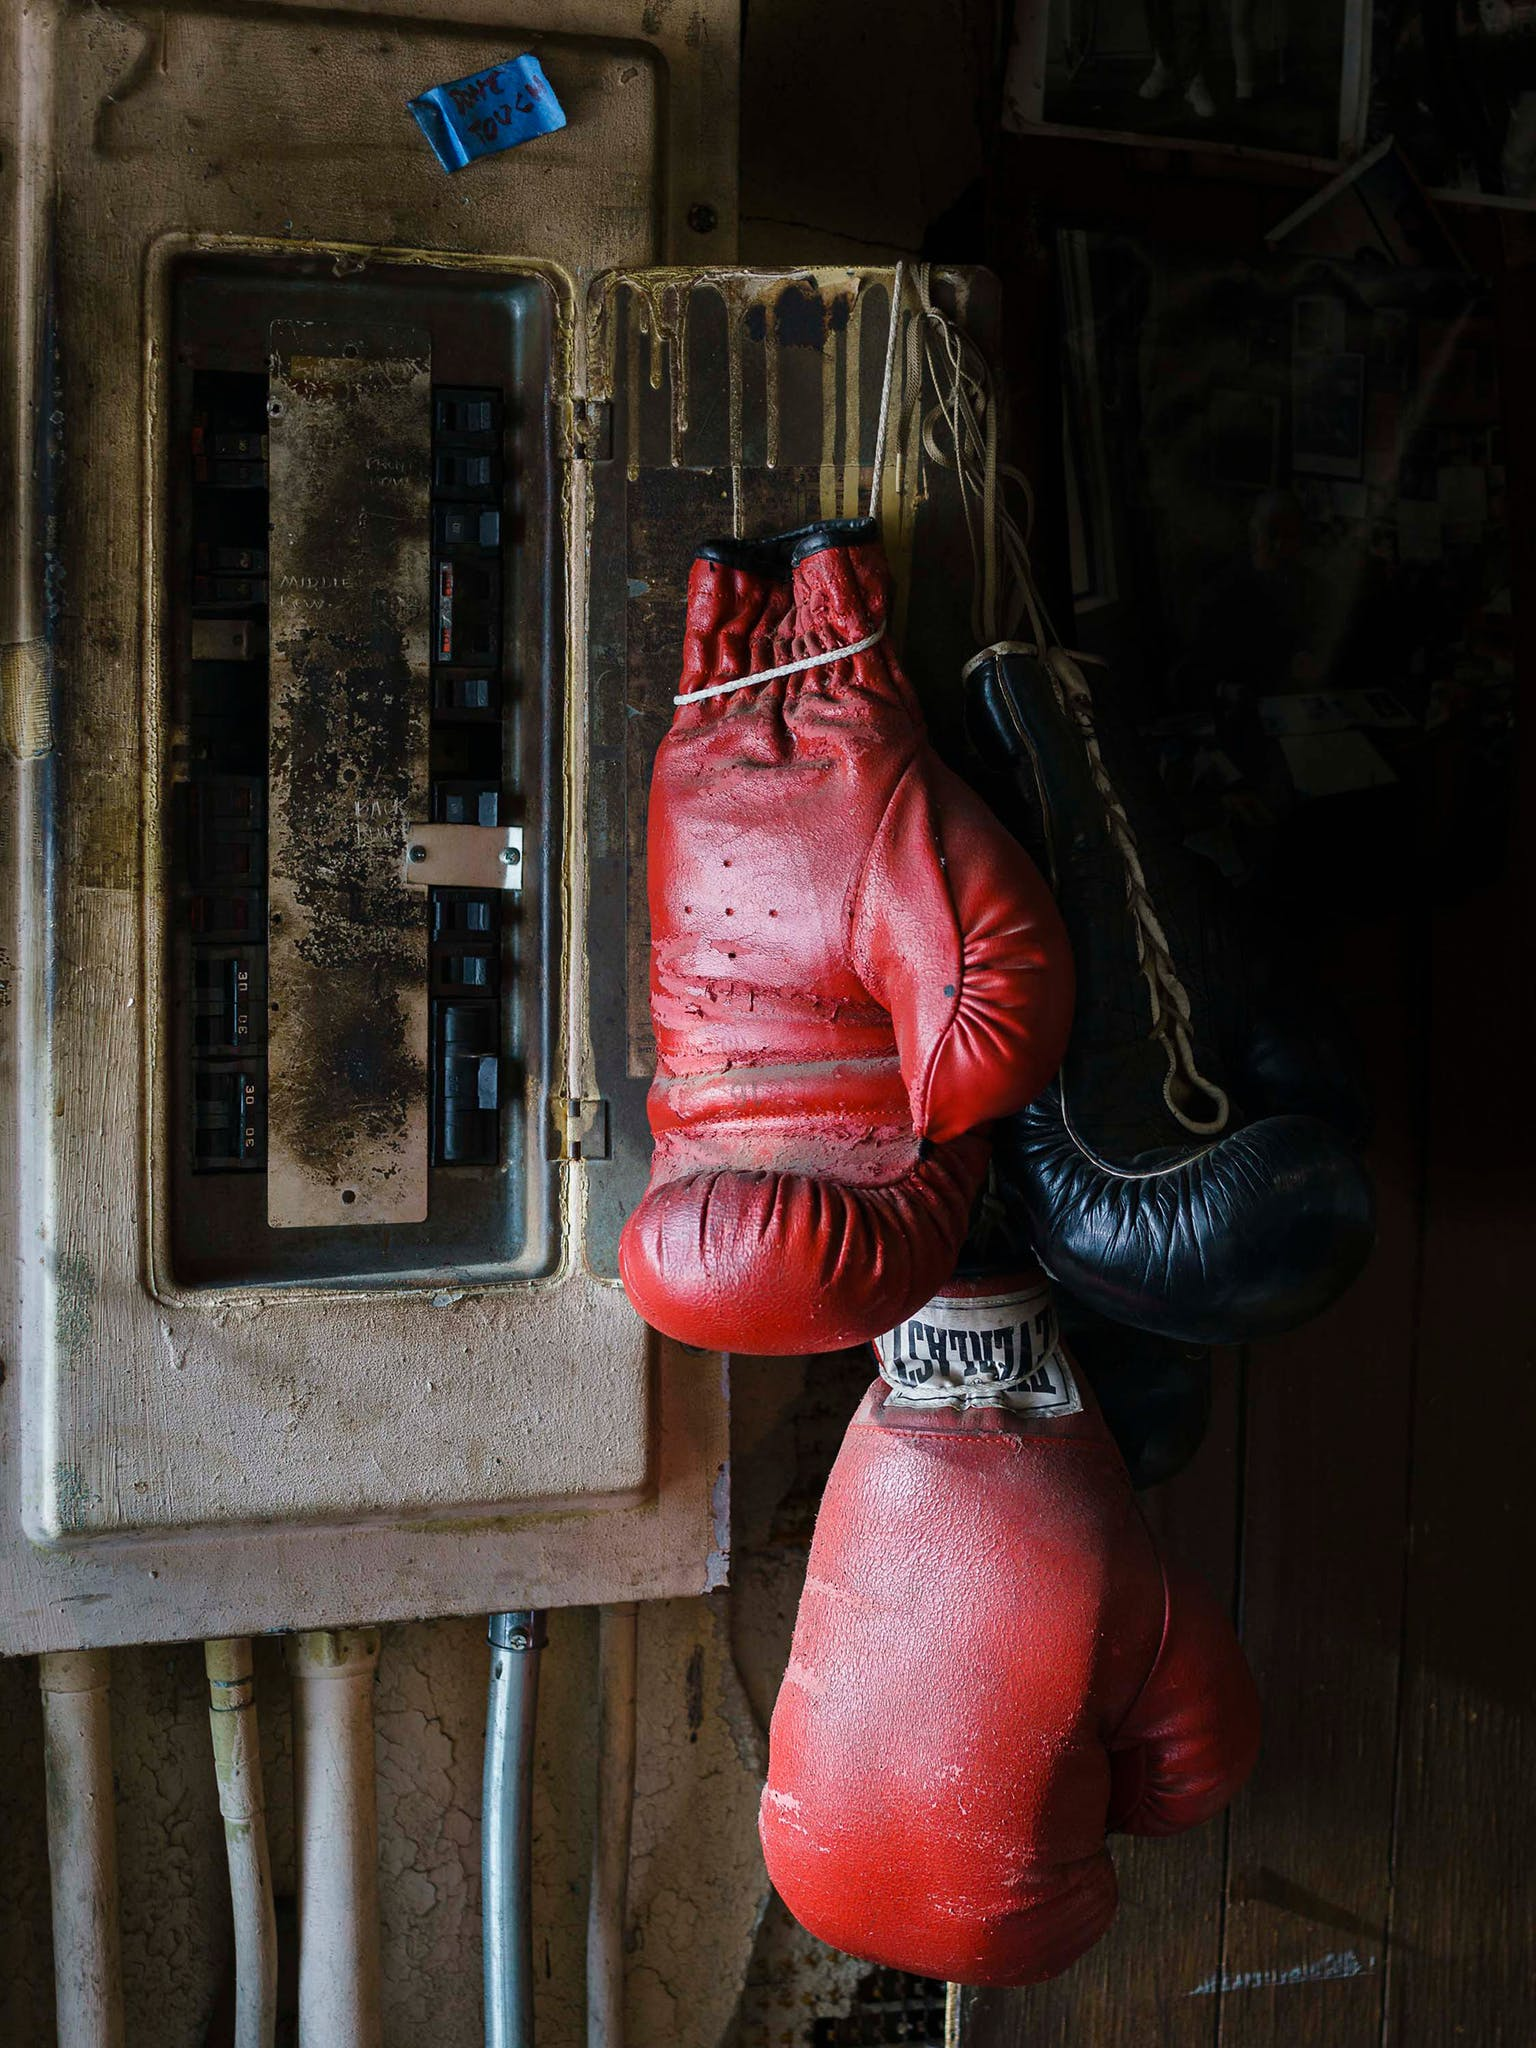 """""""This is pure Doug,"""" says Diamond, of the boxing gloves draped lazily over a fuse box that looks ready to short circuit. (The little blue note reads, """"Don't Touch."""") The fuse box clung to the wall of Eidd's office, and the gloves never left their perch. The leather and metal, the paint drips and pipes, the intense dark shadows and the glint of light on leather give this picture the feel of a still-life painting."""